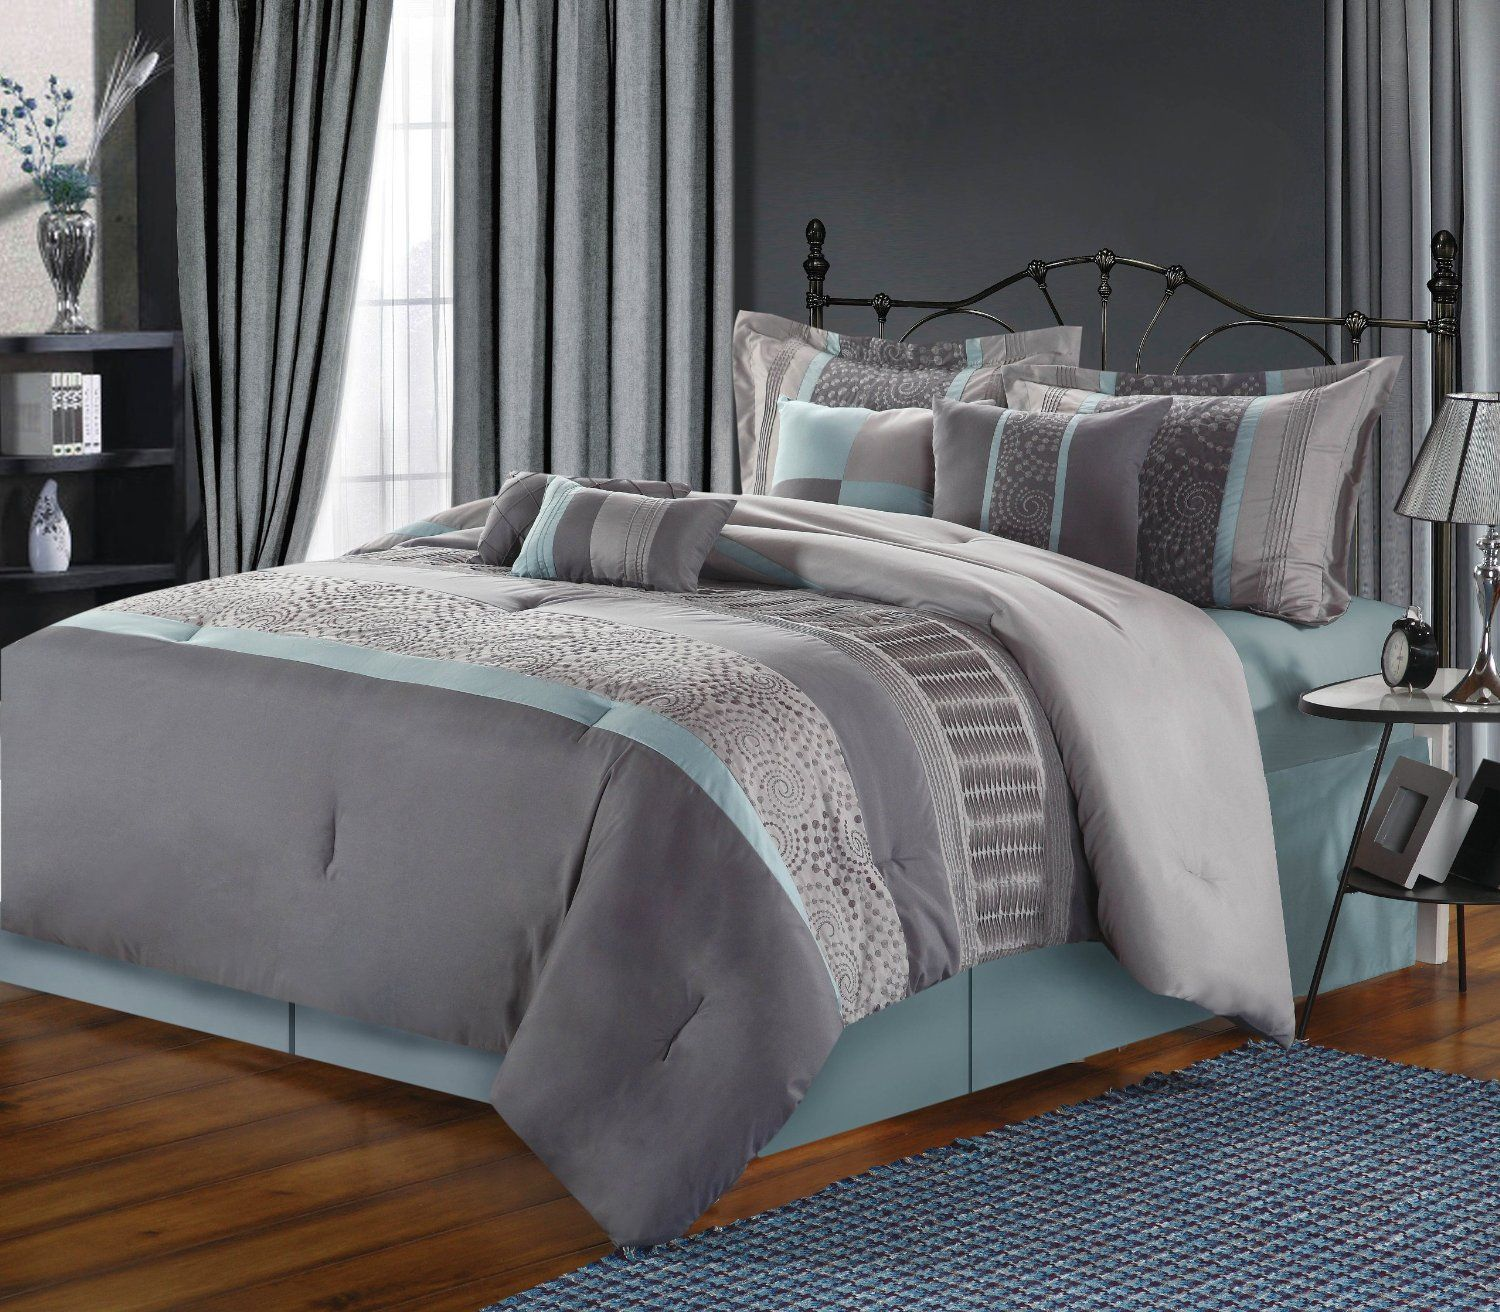 grey beige and aqua contemporary decorating  chic home piece  - chic home  piece euphoria embroidered comforter set king bluegrey